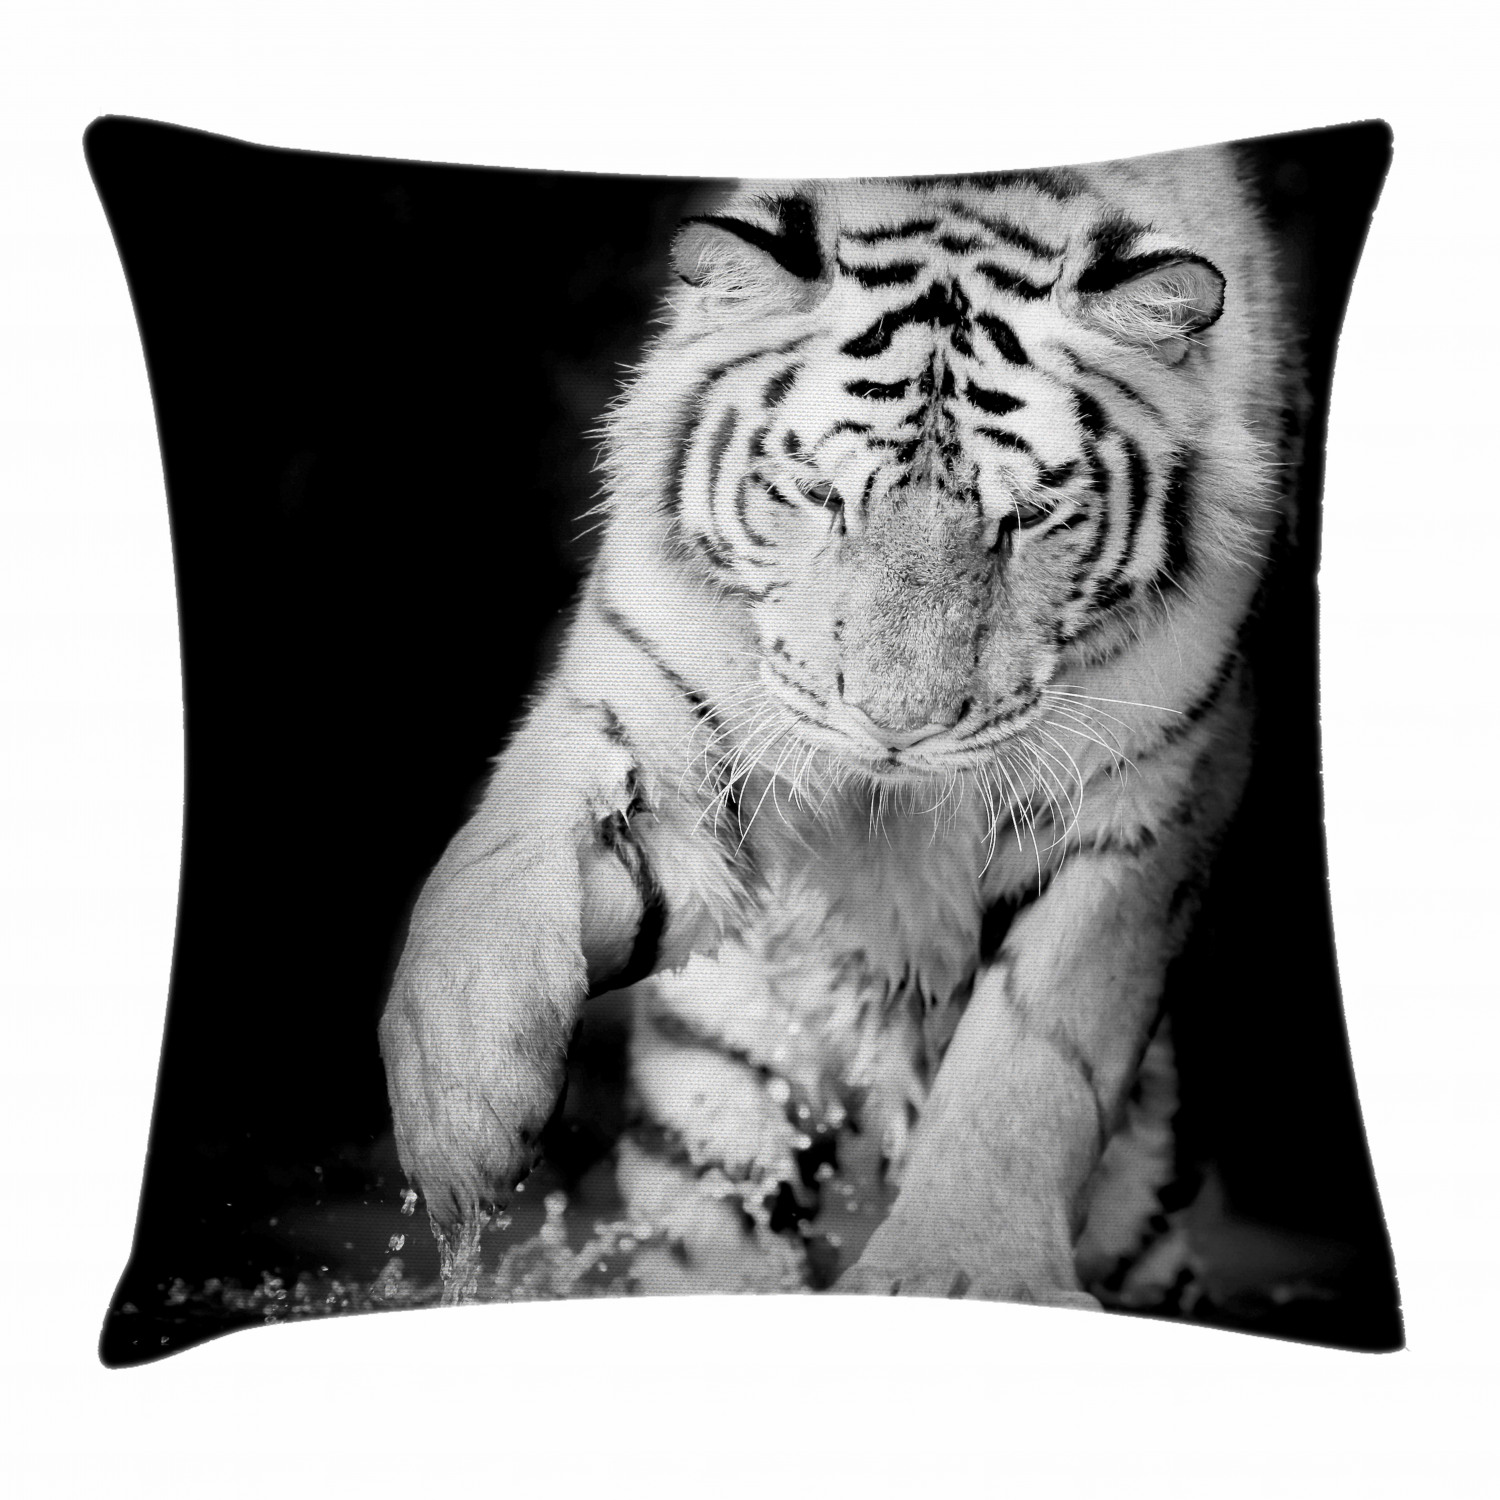 Tiger Throw Pillow Cushion Cover Black And White Image Of Large Cat Playing With Water Cool Animals Fun Hunter Decorative Square Accent Pillow Case 24 X 24 Inches Black Pale Grey By